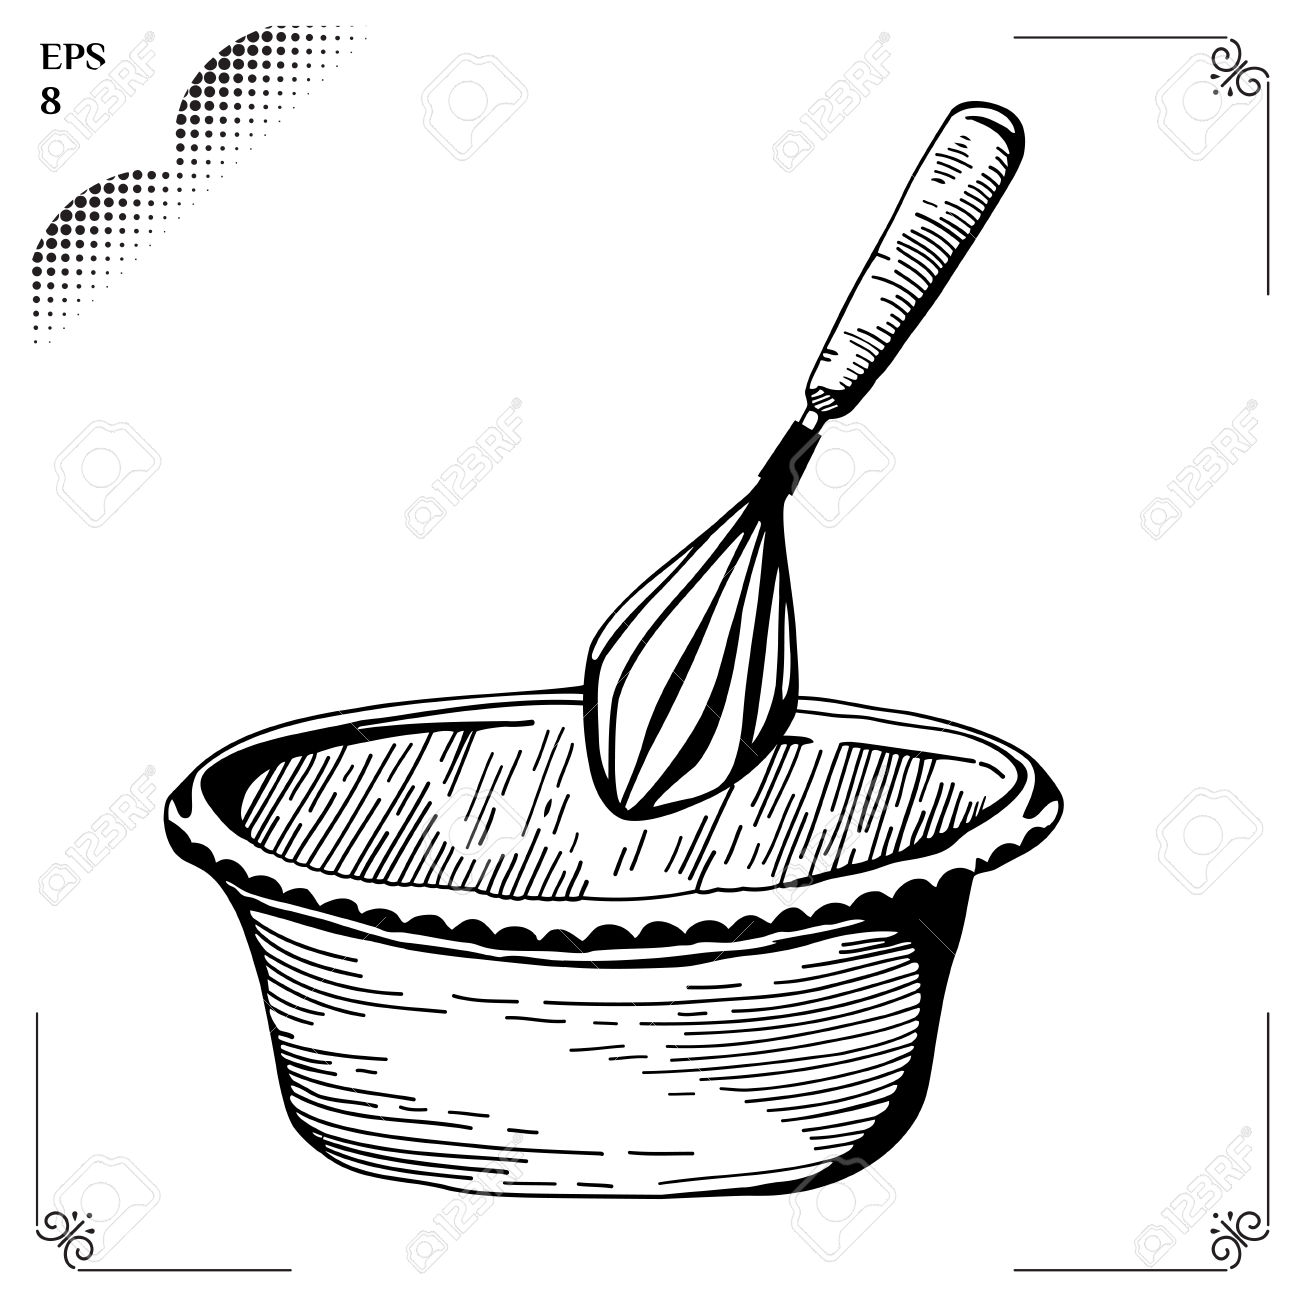 Whisk Culinary Whipped Methods Clipart Station